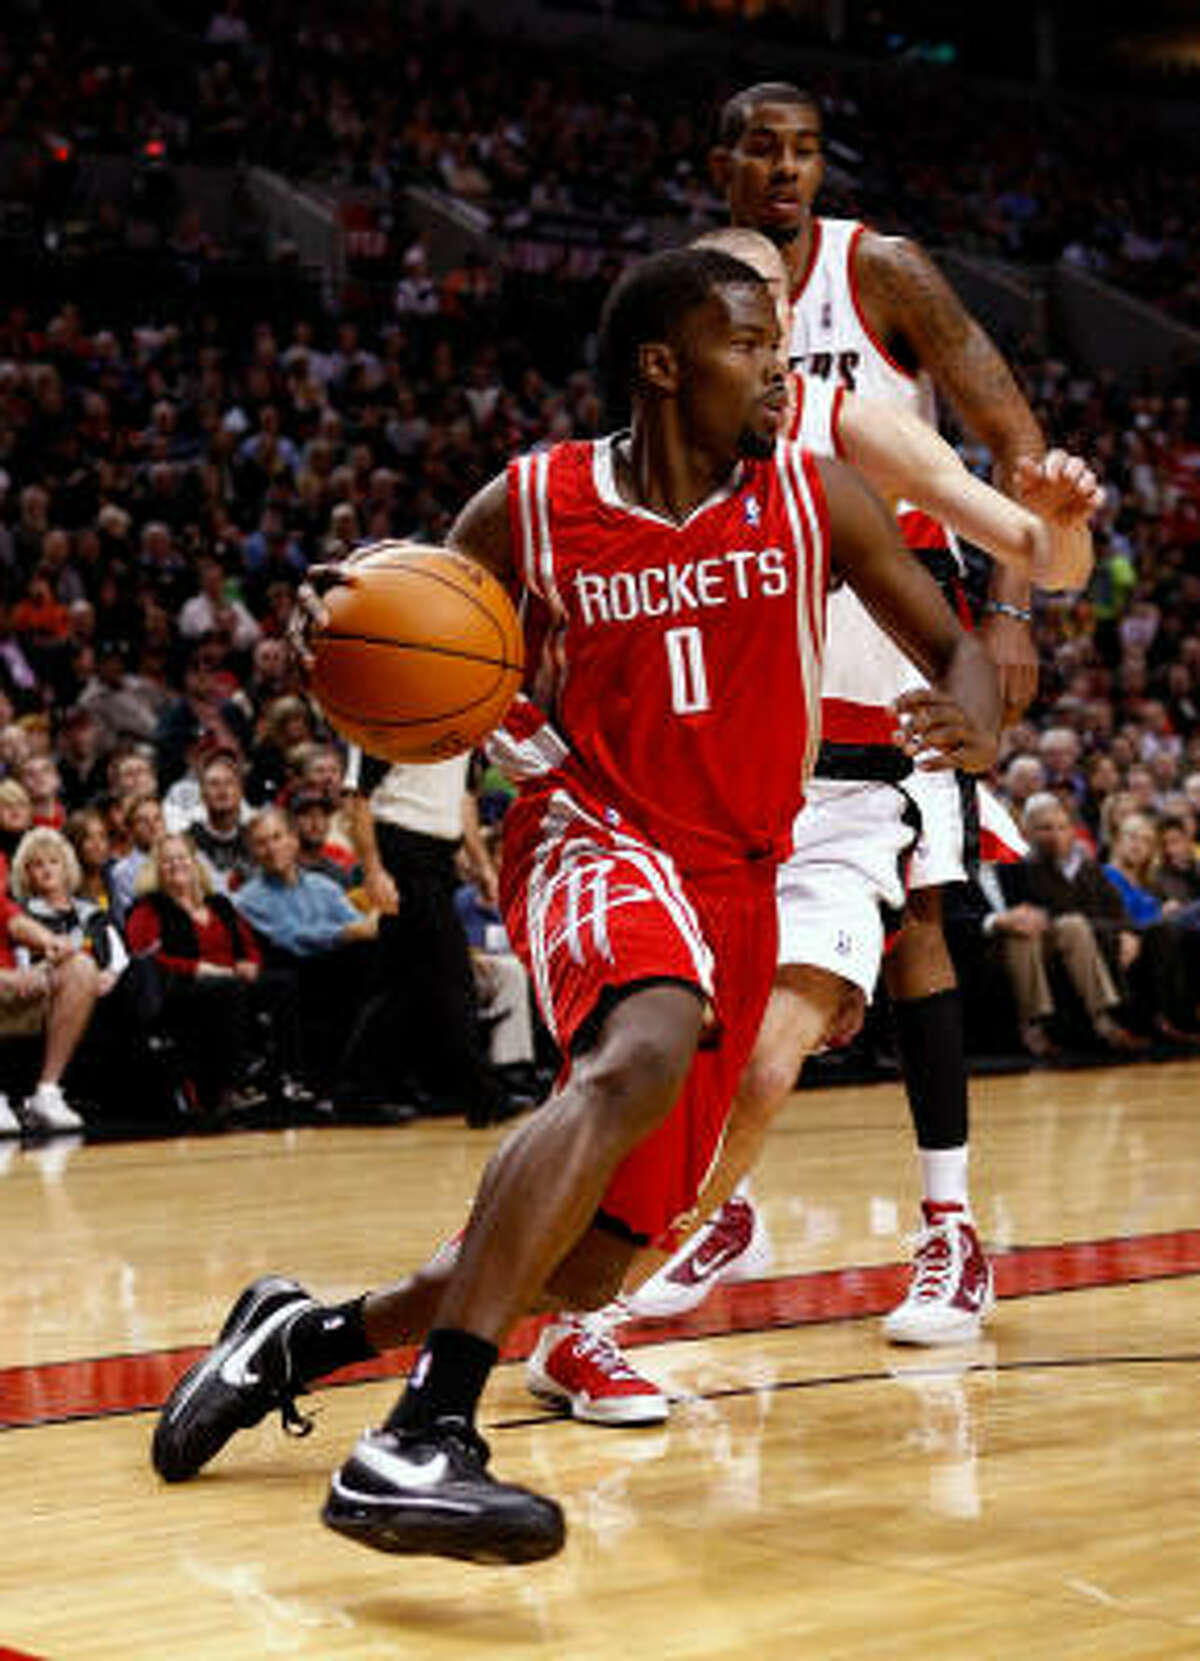 Aaron Brooks (above) led the Rockets with 19 points, playing much of the fourth quarter with Kyle Lowry, who provided a much-needed lift.